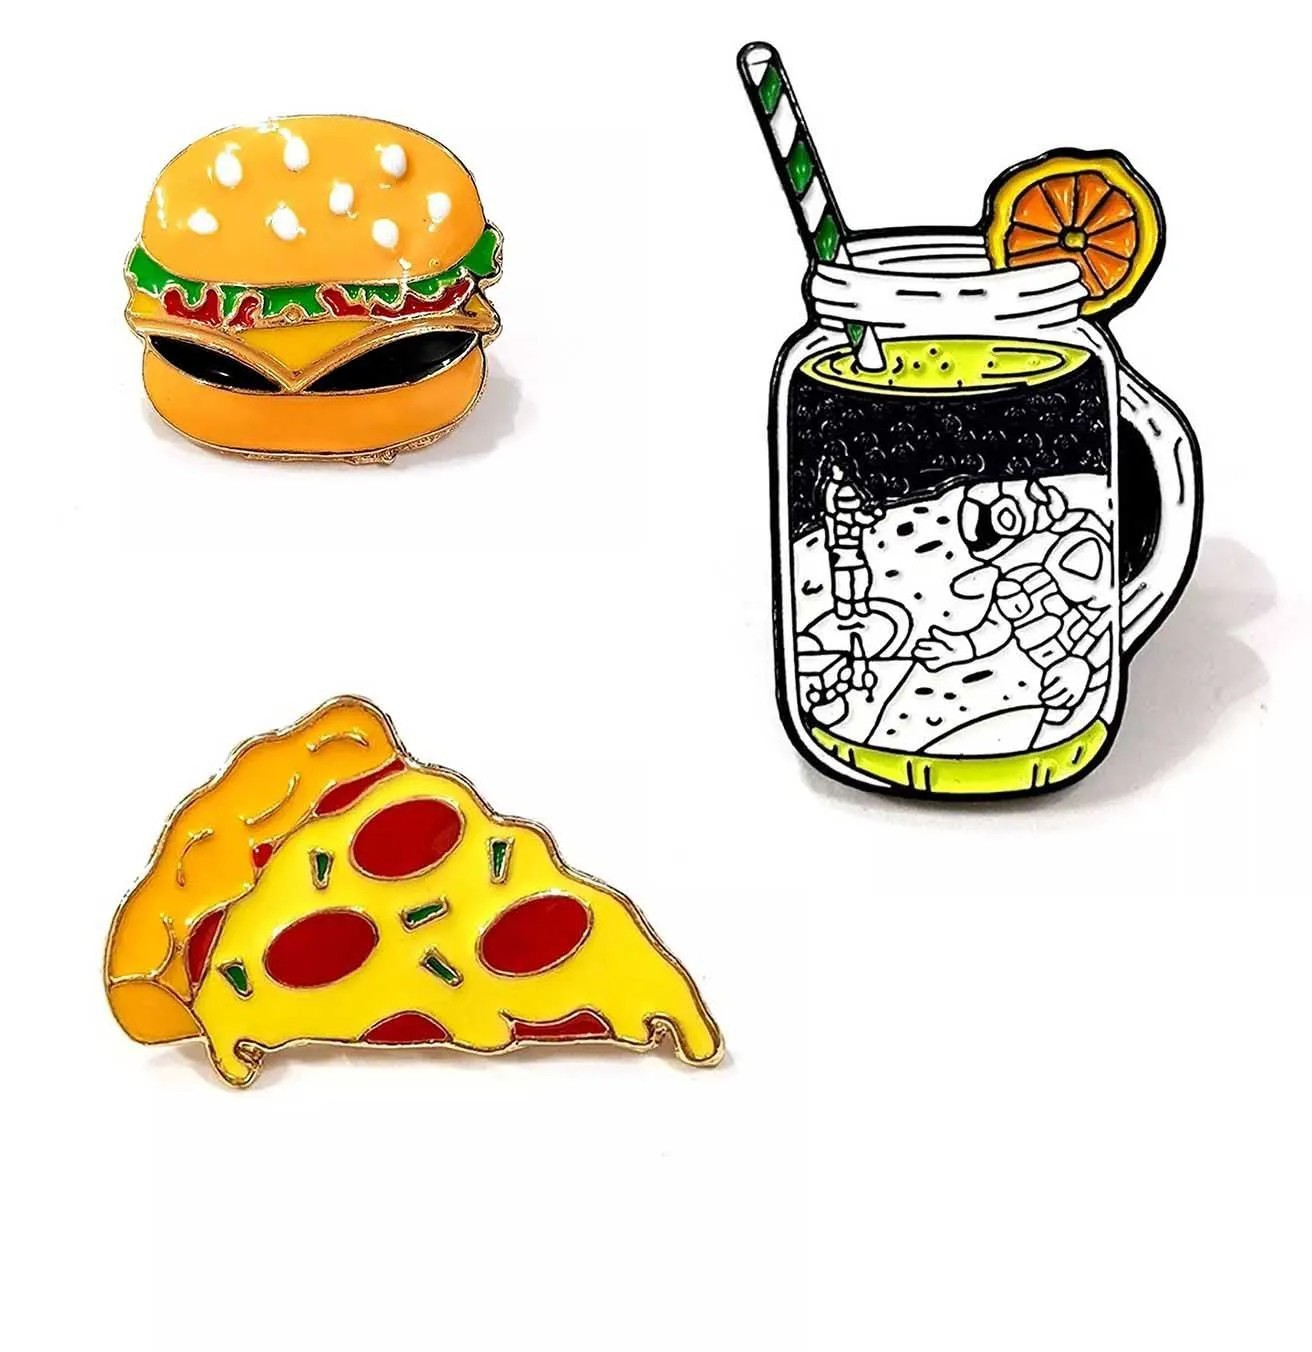 Pin Boton Broche Comida Hamburguer Pizza Limonada Food